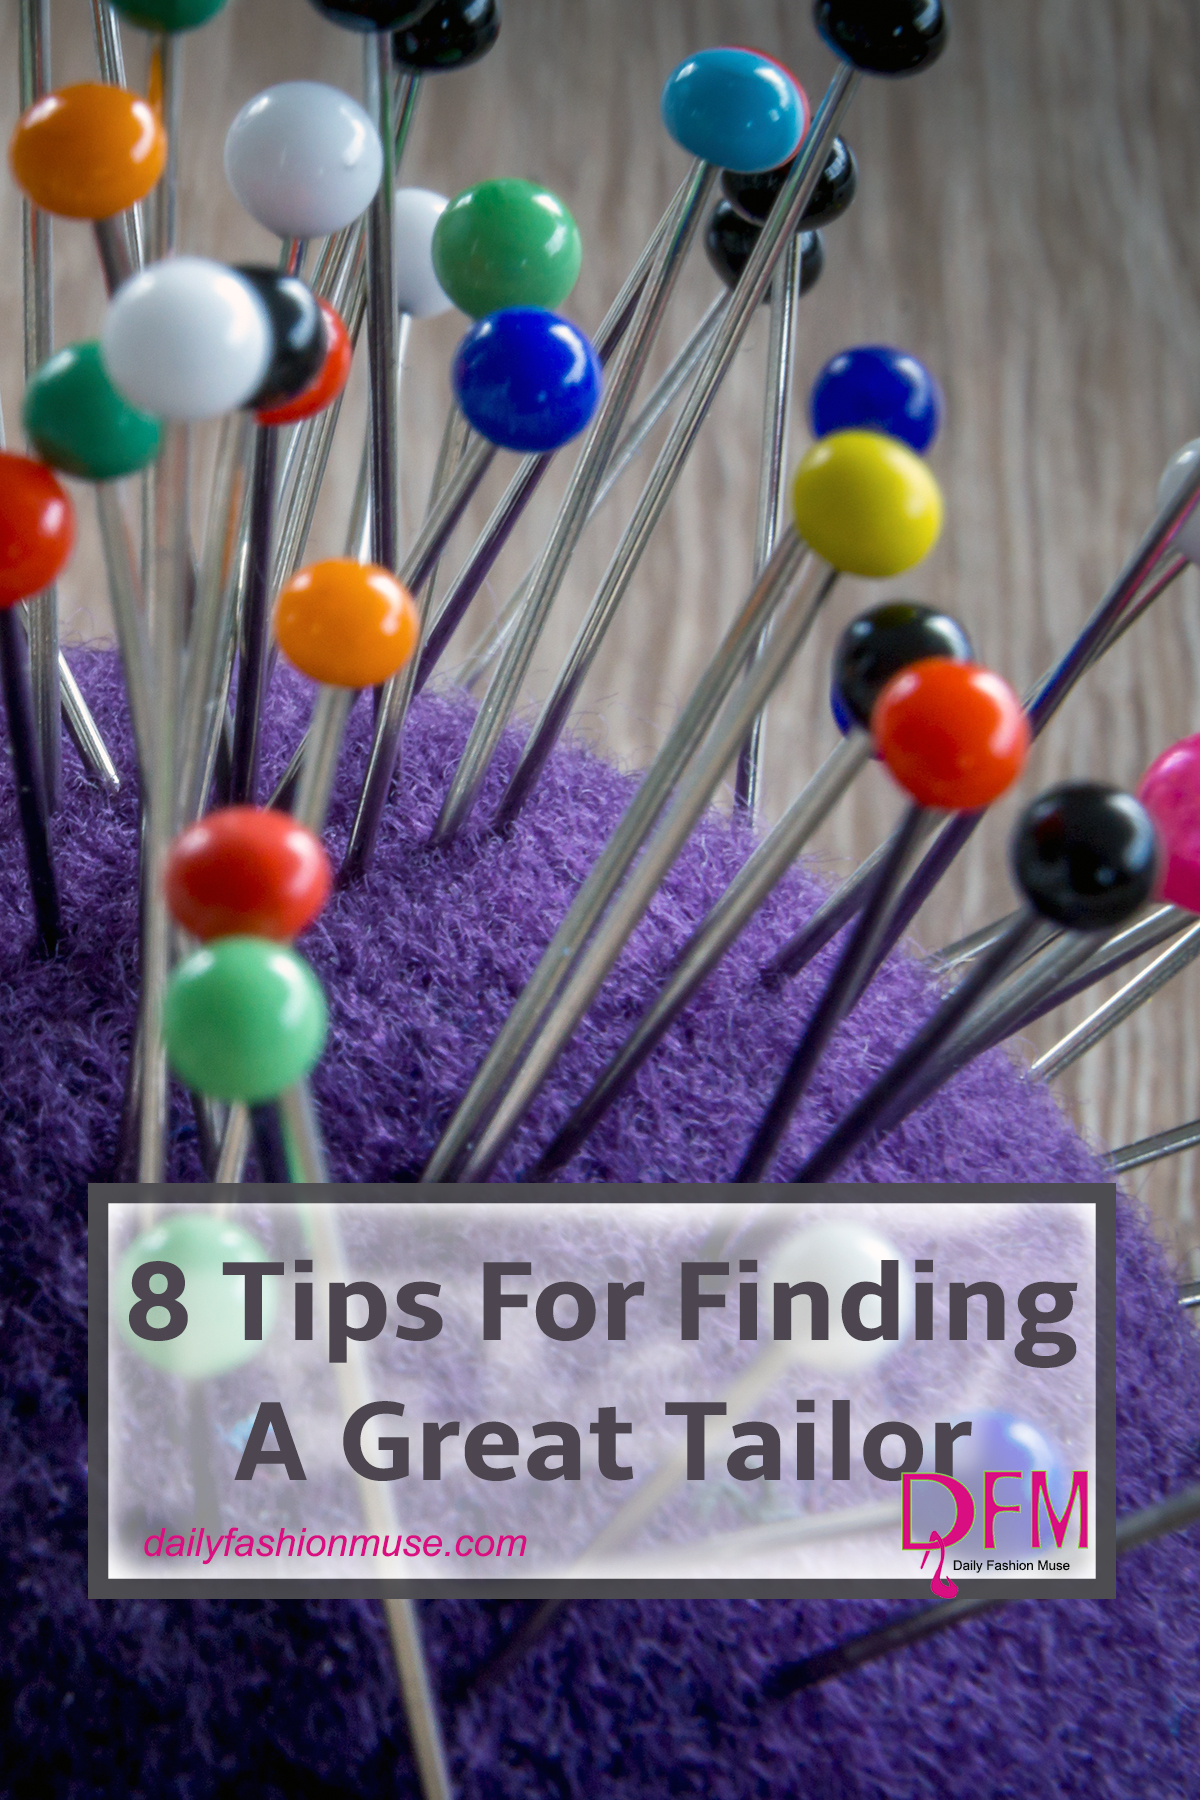 Finding a tailor can be very challenging. Use my 8 tips to make the process of finding a quality tailor a little bit easier. Click to read.